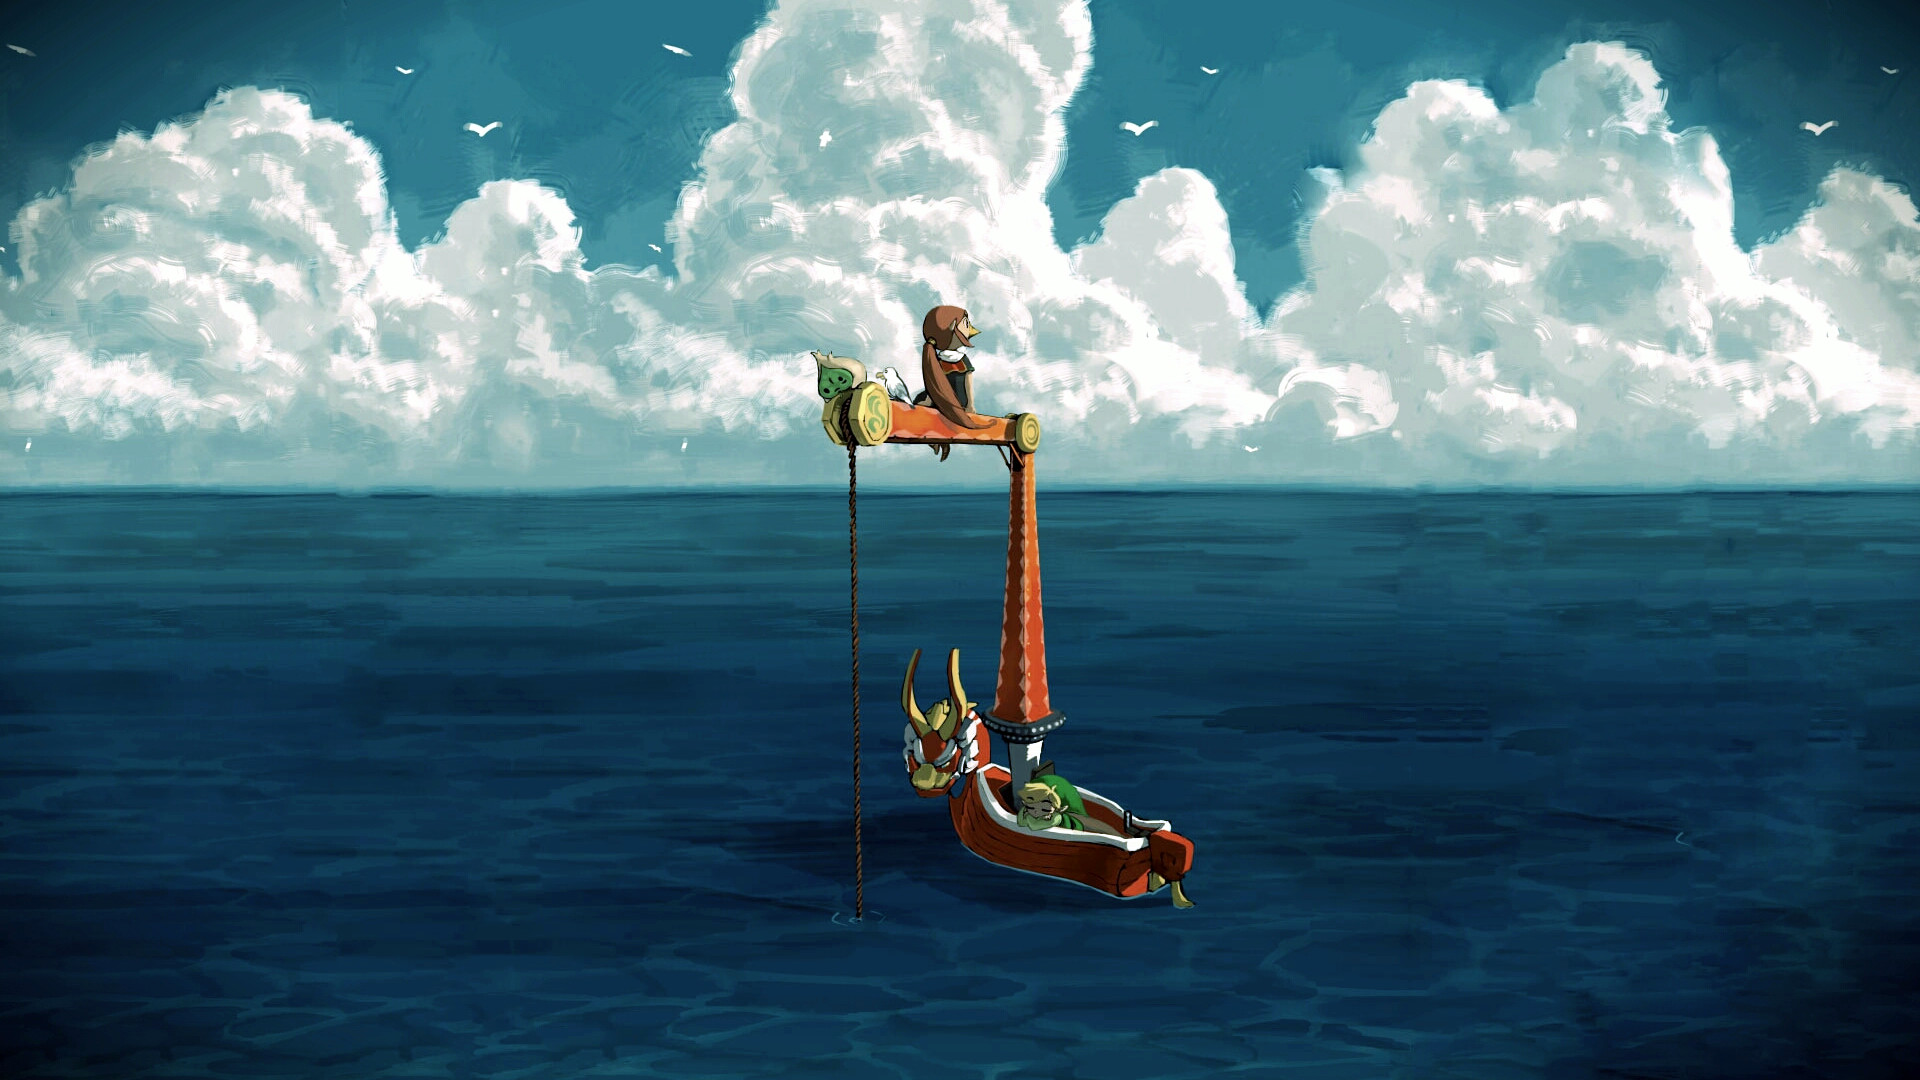 A wallpaper from Legend of Zelda: Wind Waker that I've been using on a  desktop for several years now. Thought I'd upload here, both as a backup  and for …